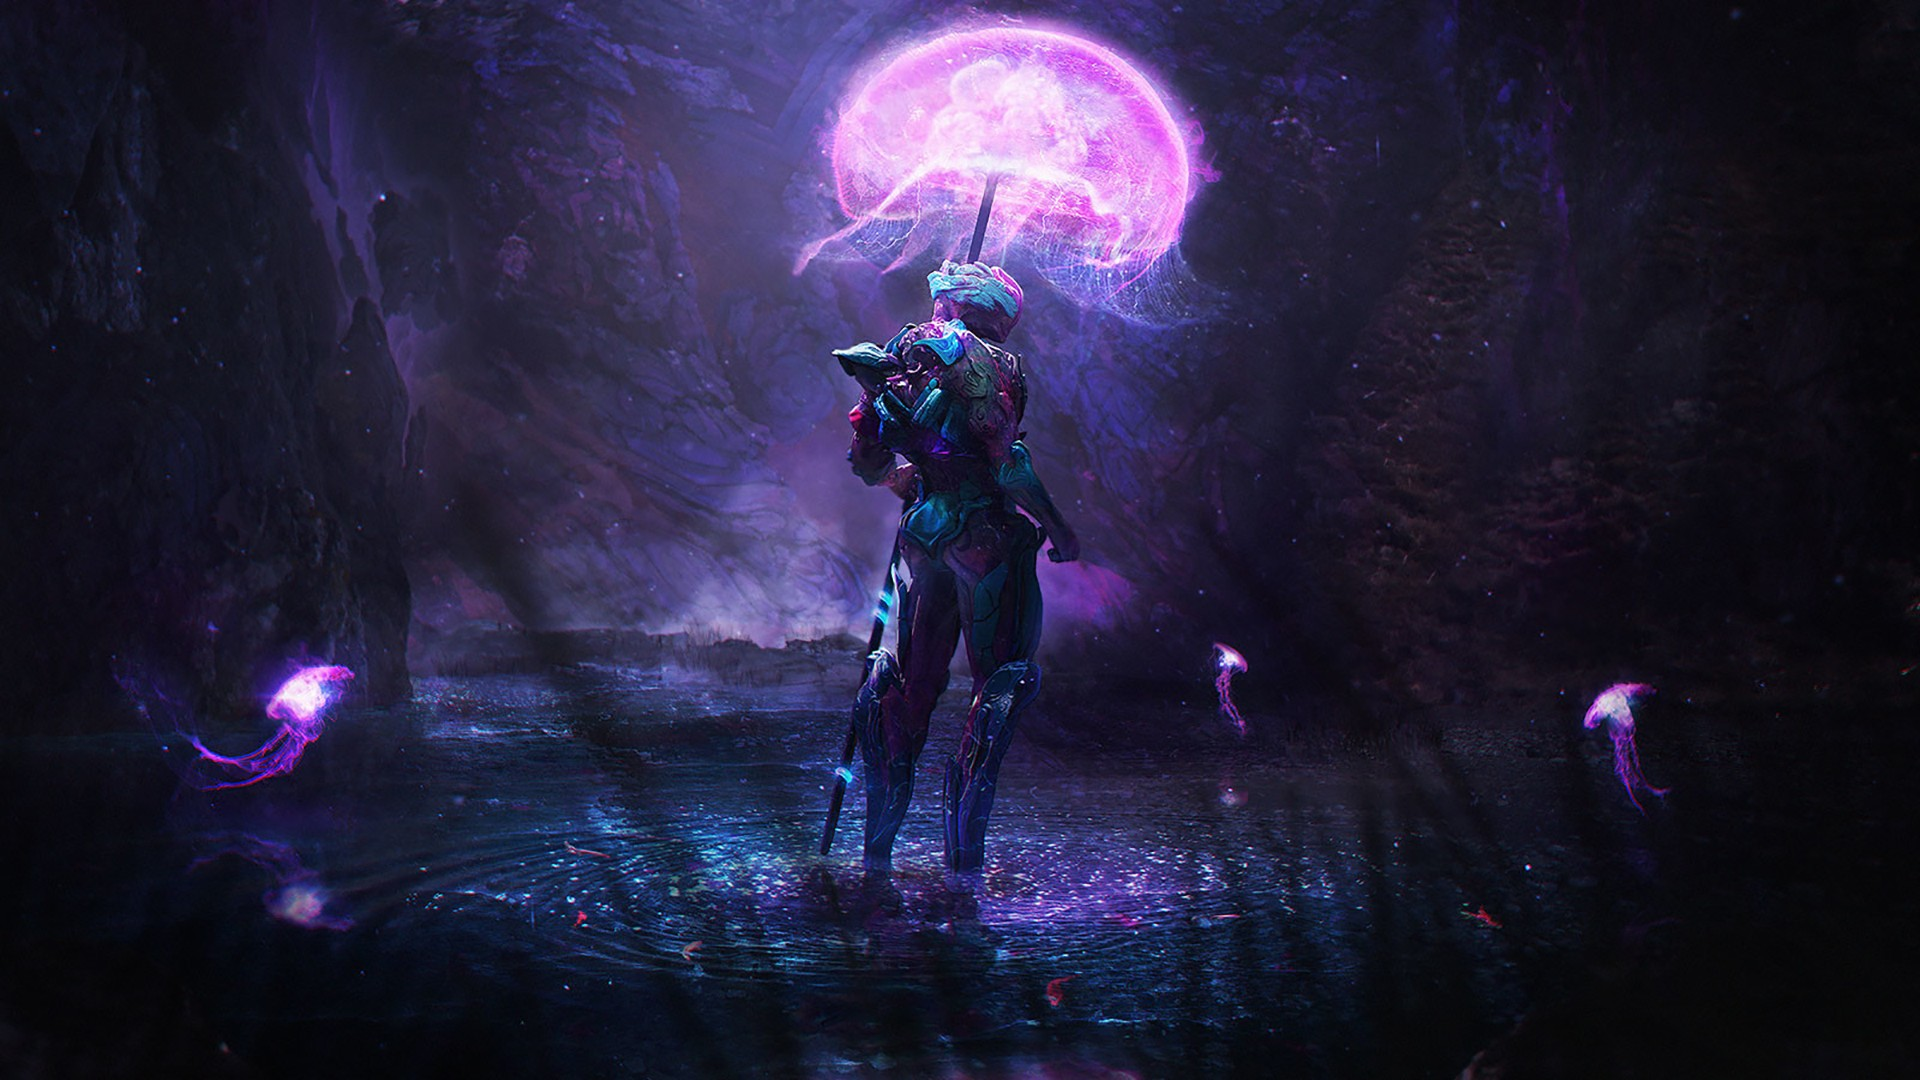 Lonely Girl Hd Wallpapers 1080p Wallpaper Forest Fantasy Art Night Artwork Jellyfish